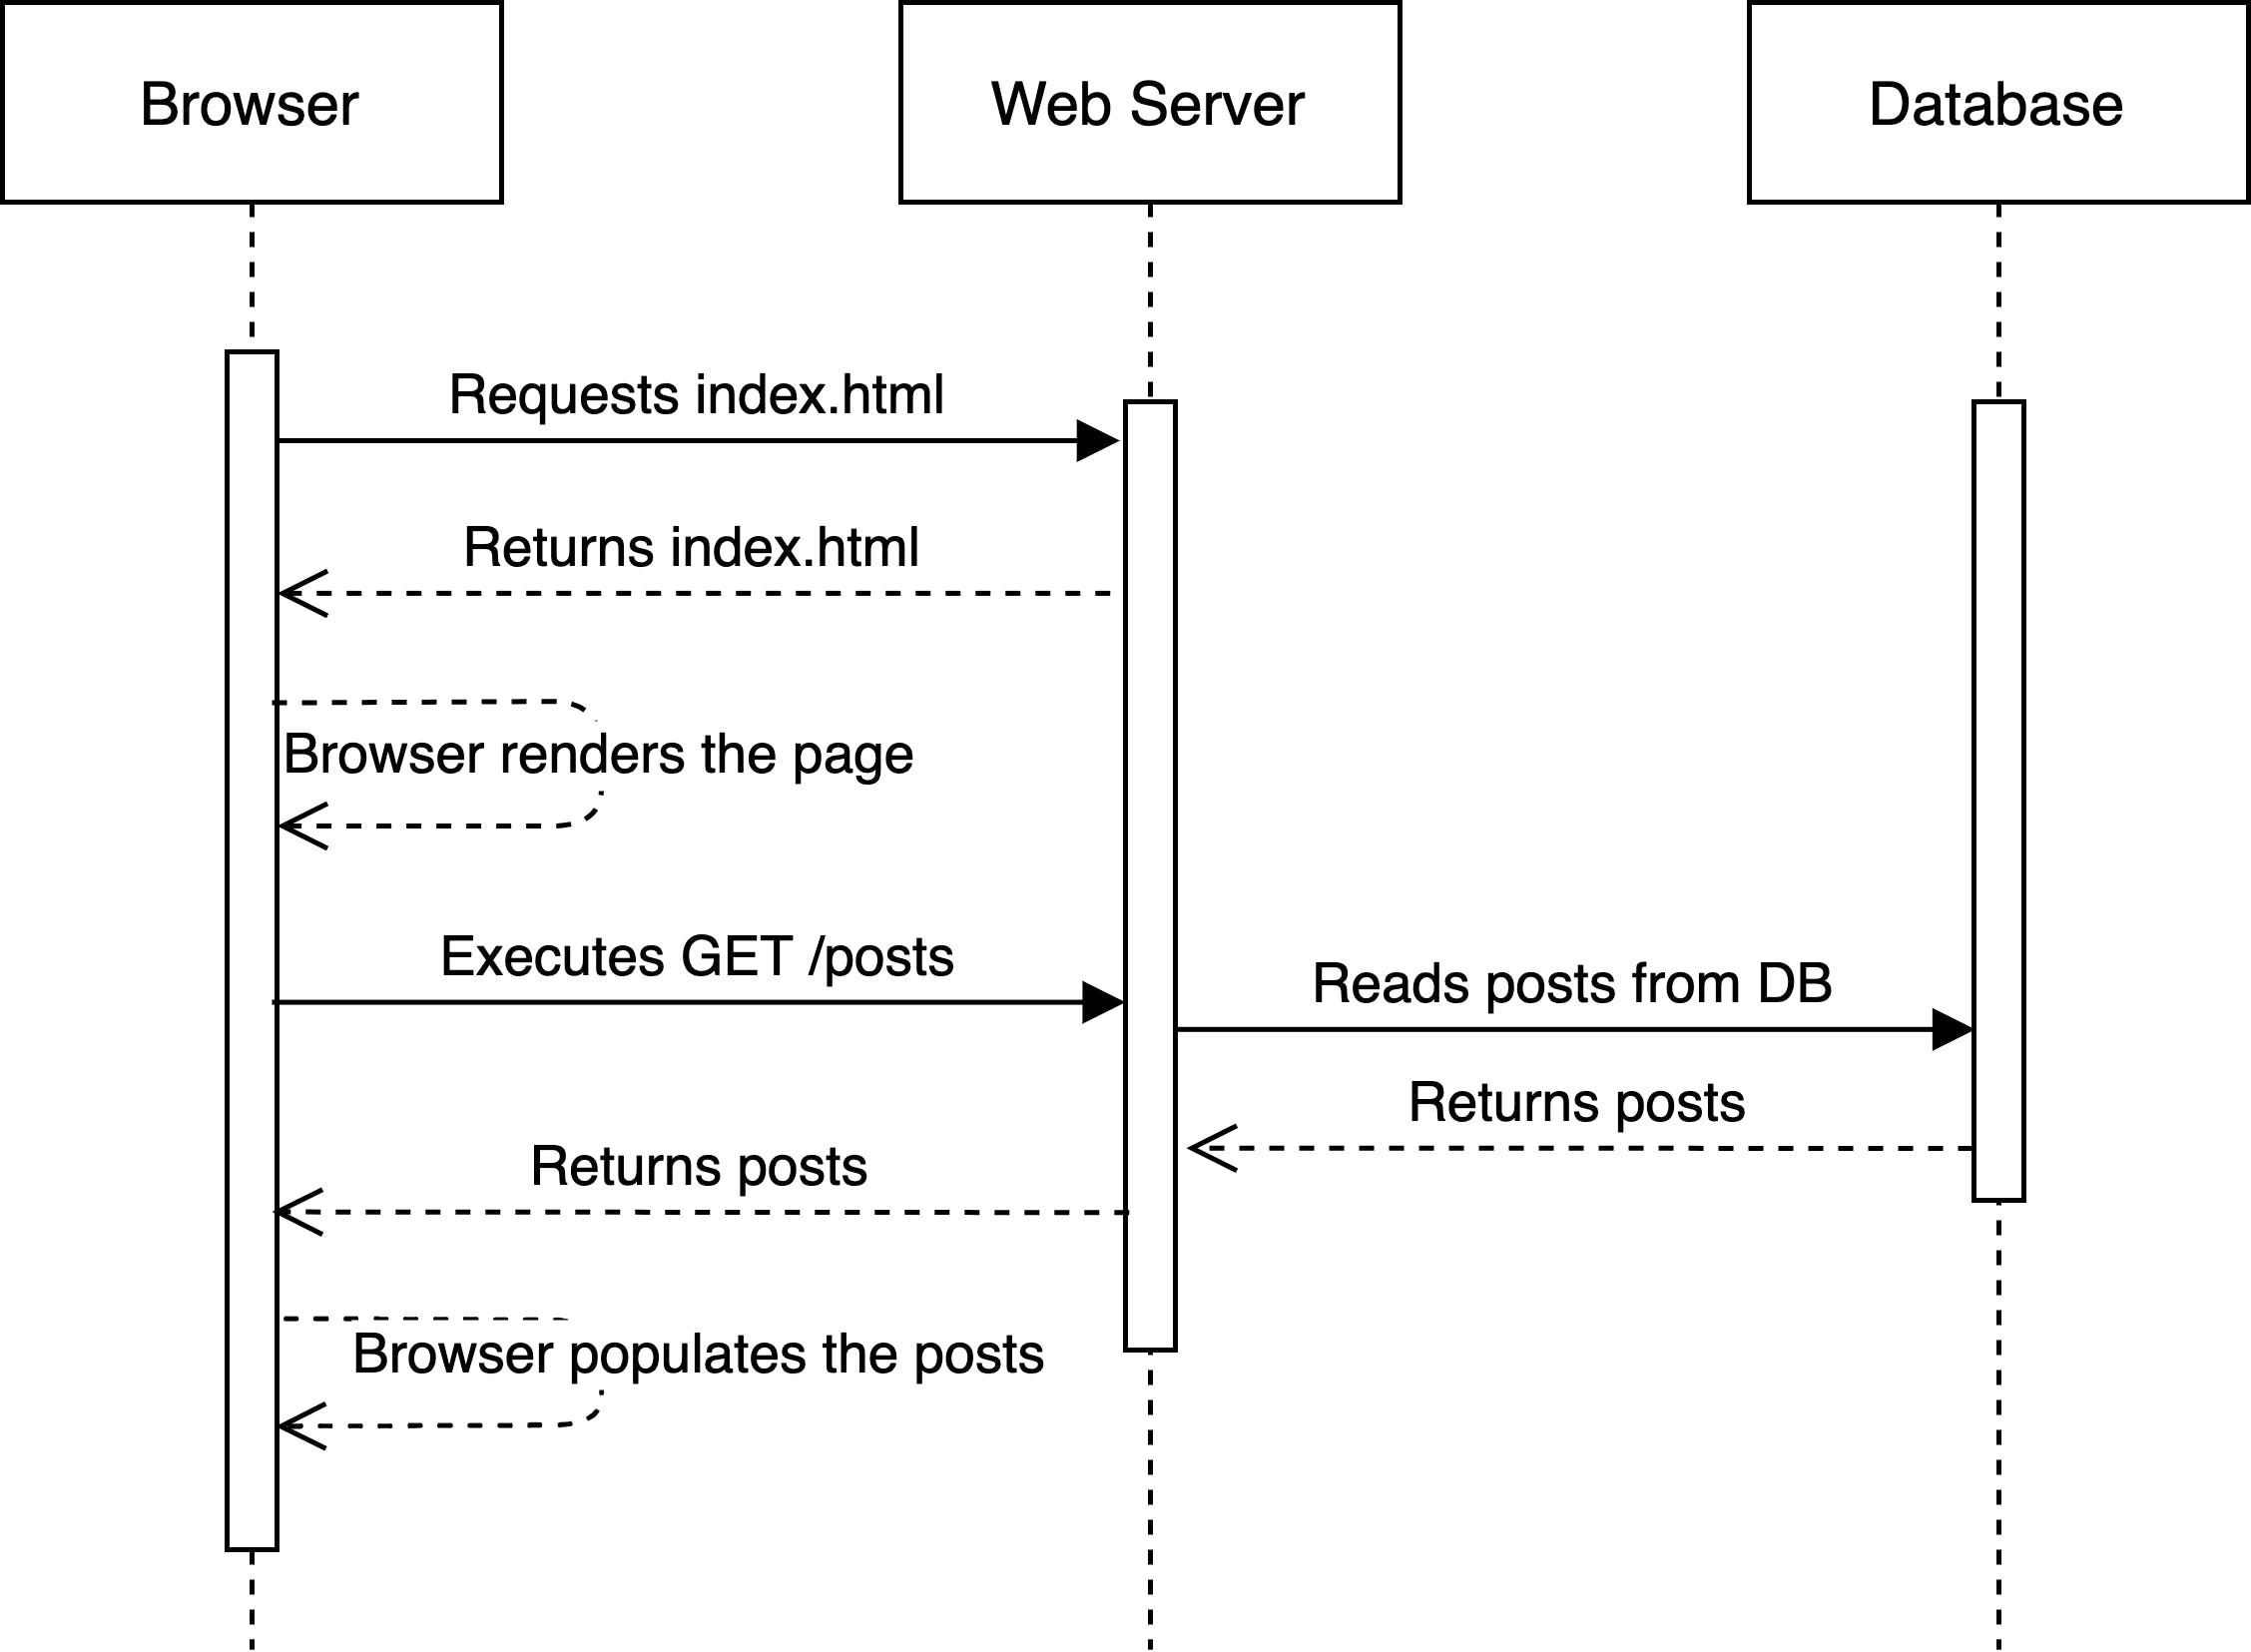 Client Side Diagram